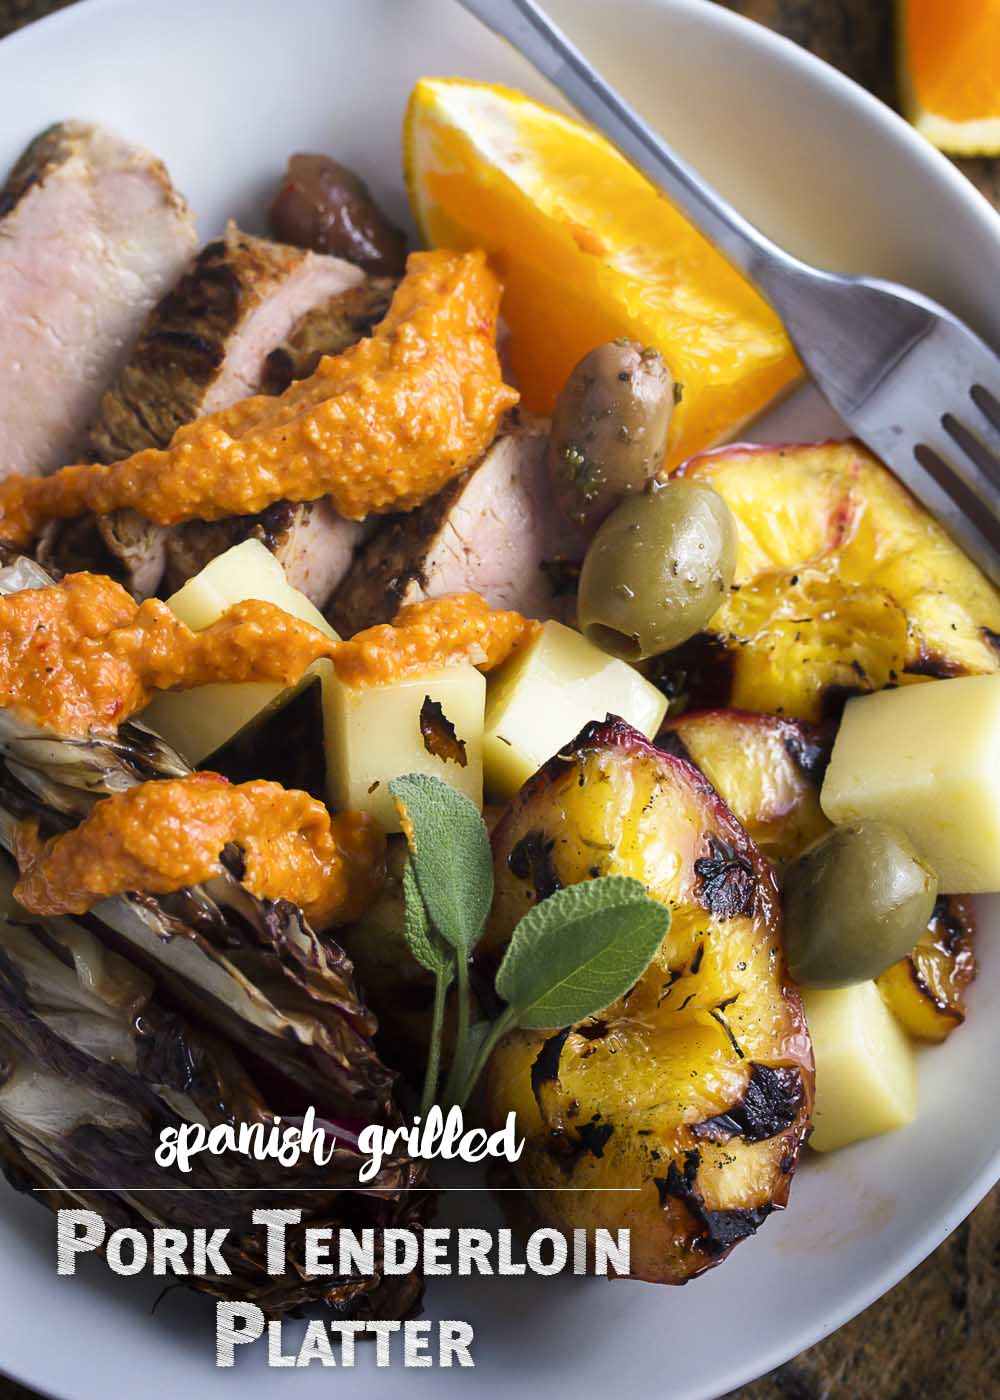 This grilled pork tenderloin peaches and radicchio platter is full of great Spanish flavors and fun additions to make this an excellent meal for a special occasion. Or for next Saturday night! | justalittlebitofbacon.com